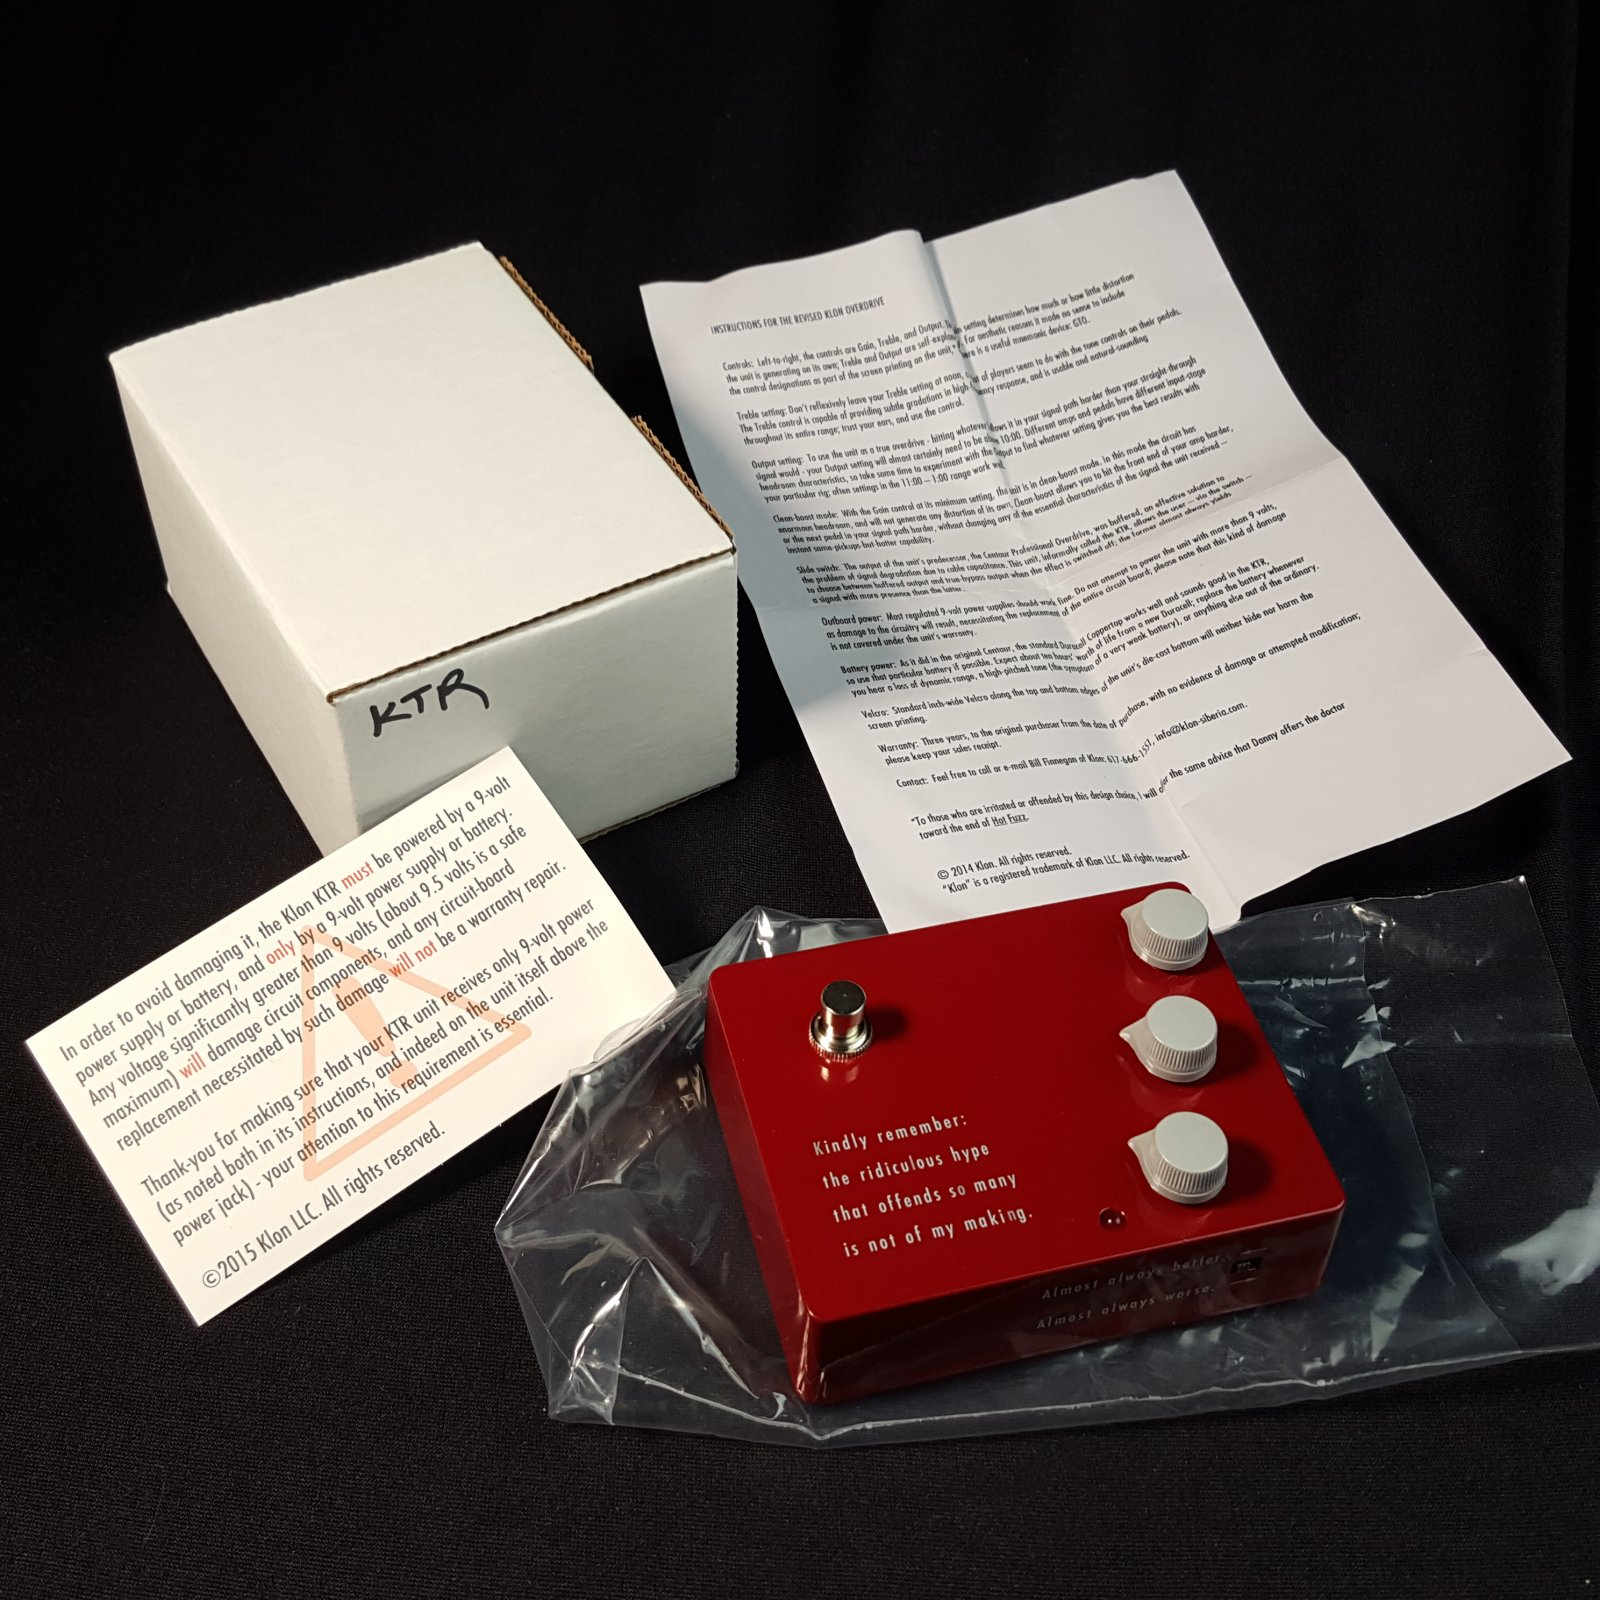 USED Klon KTR Overdrive Guitar Effects Pedal